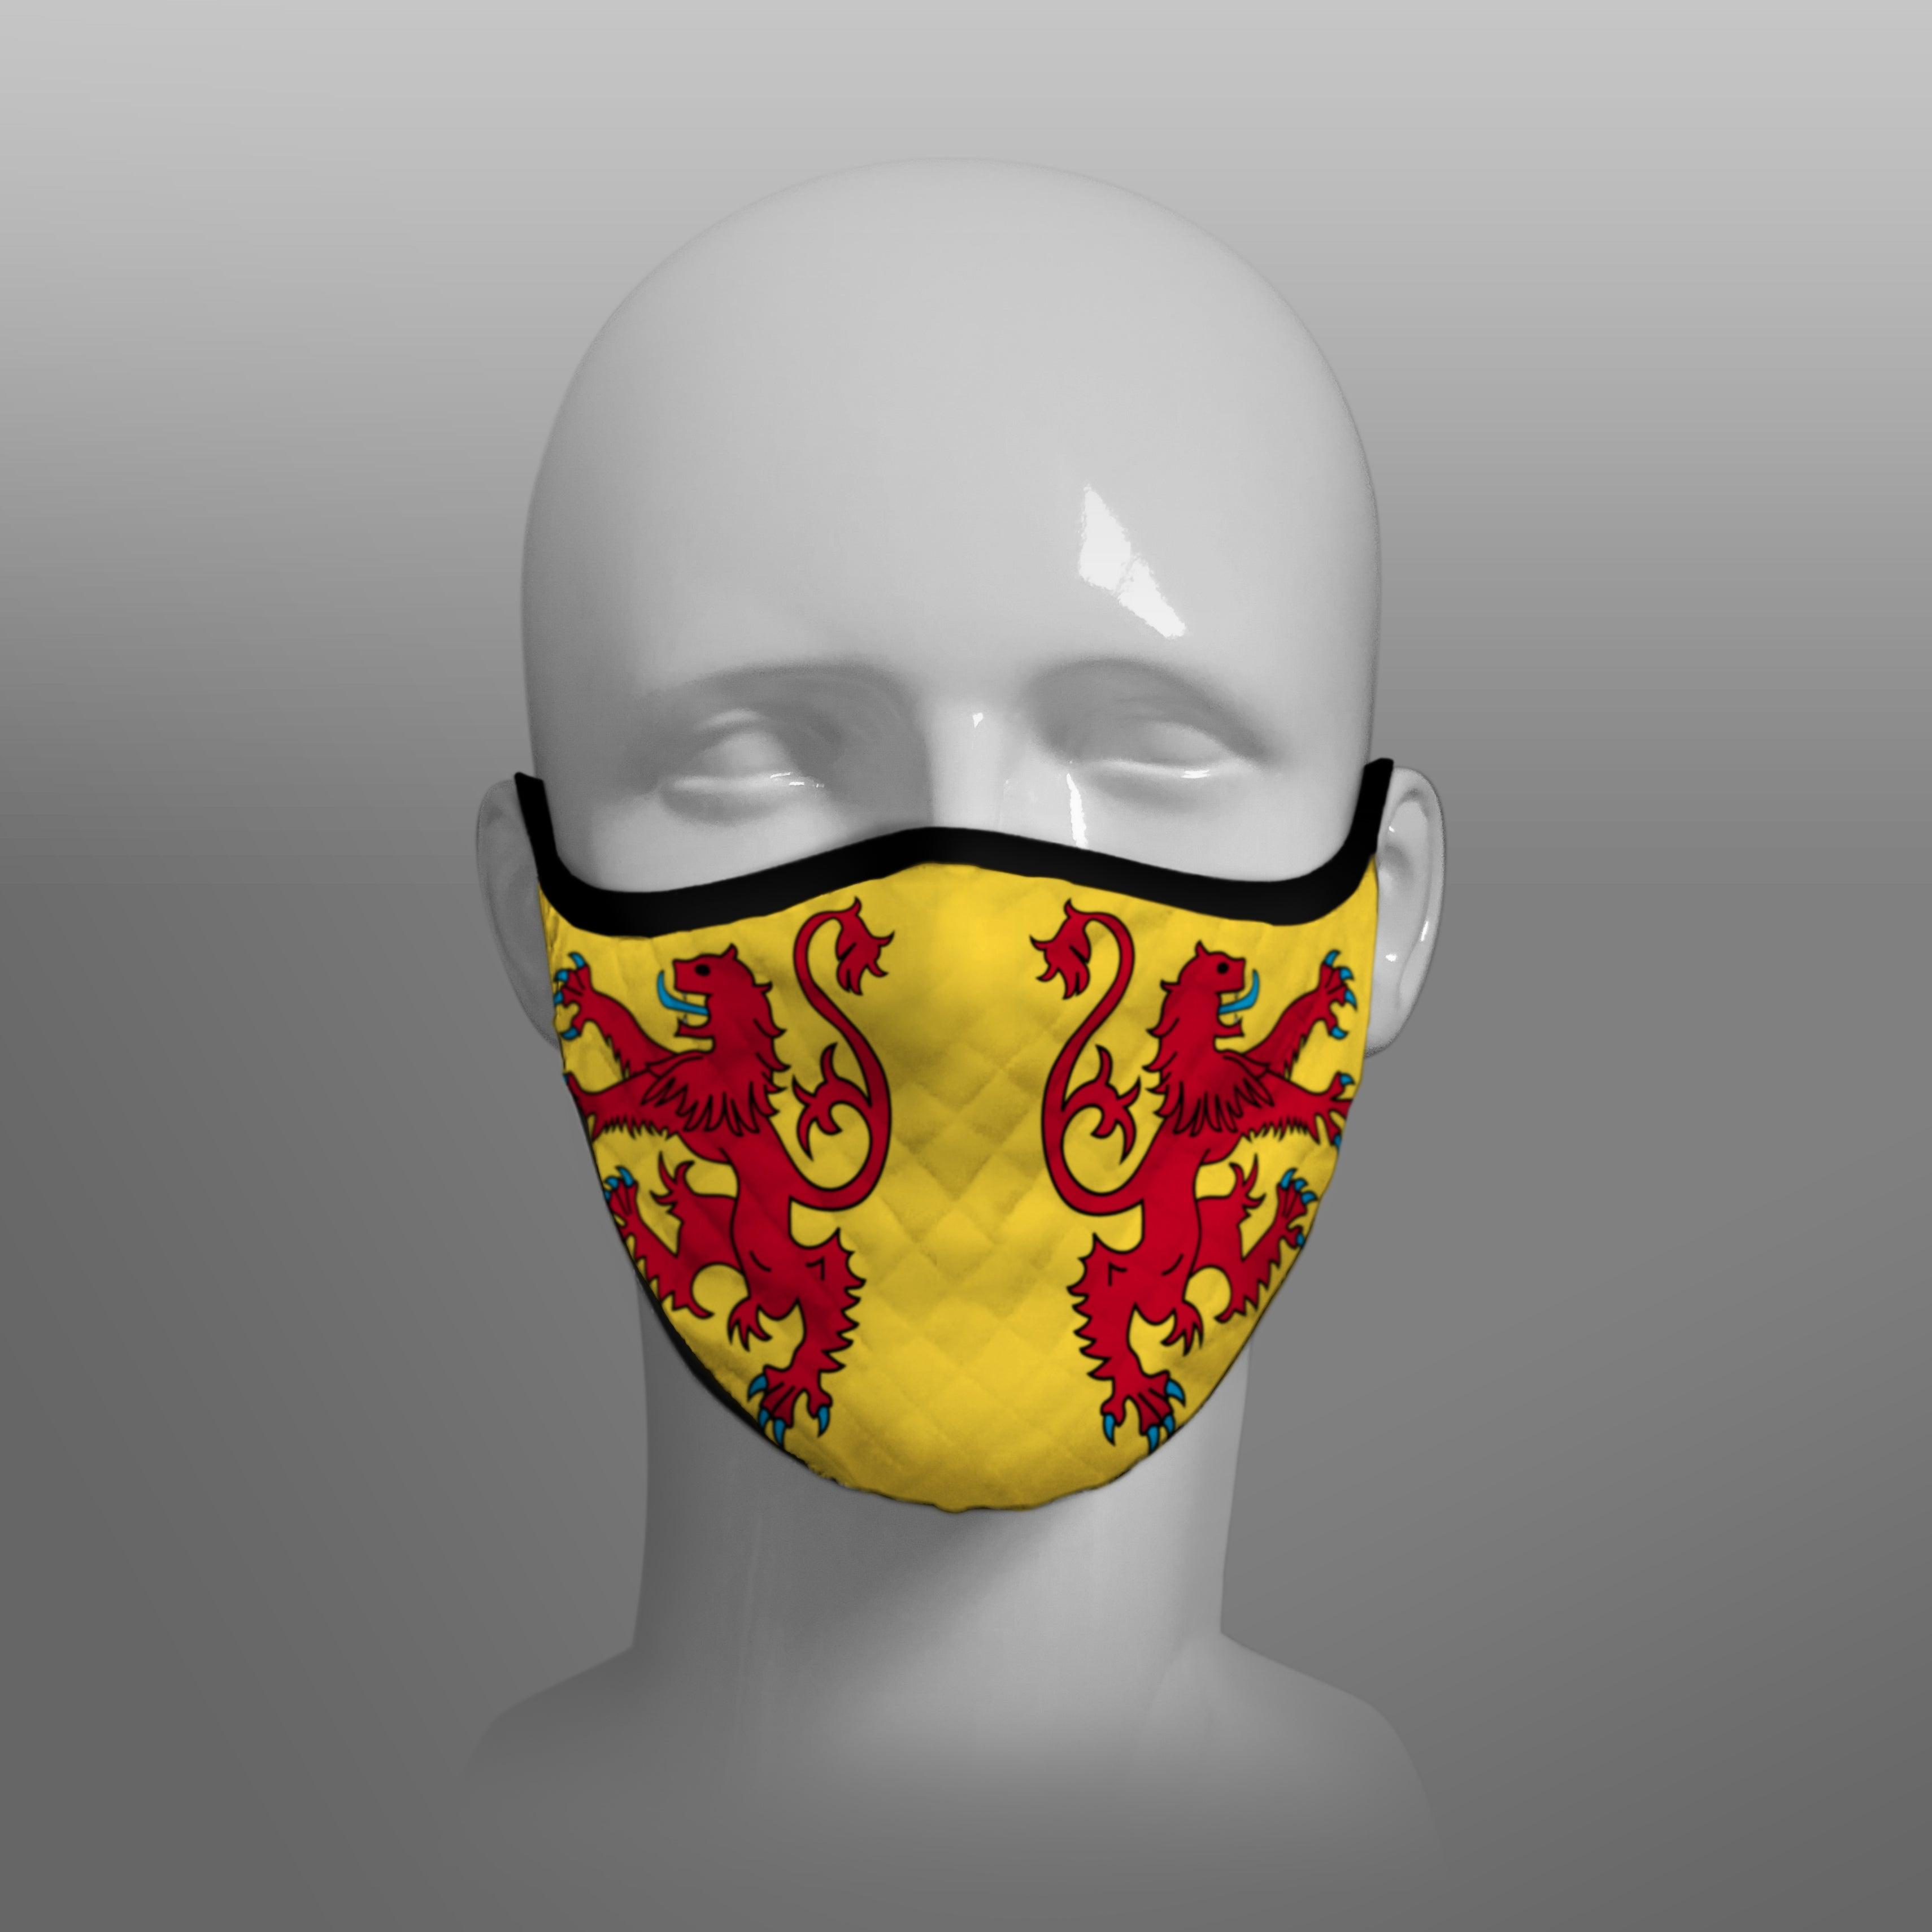 Contoured Face Mask - face covering - Nicola Sturgeon - Scottish Lion Rampant Royal Standard of Scotland - by Steven Patrick Sim the Tartan Artisan - Stevie Tartan Guy - medium